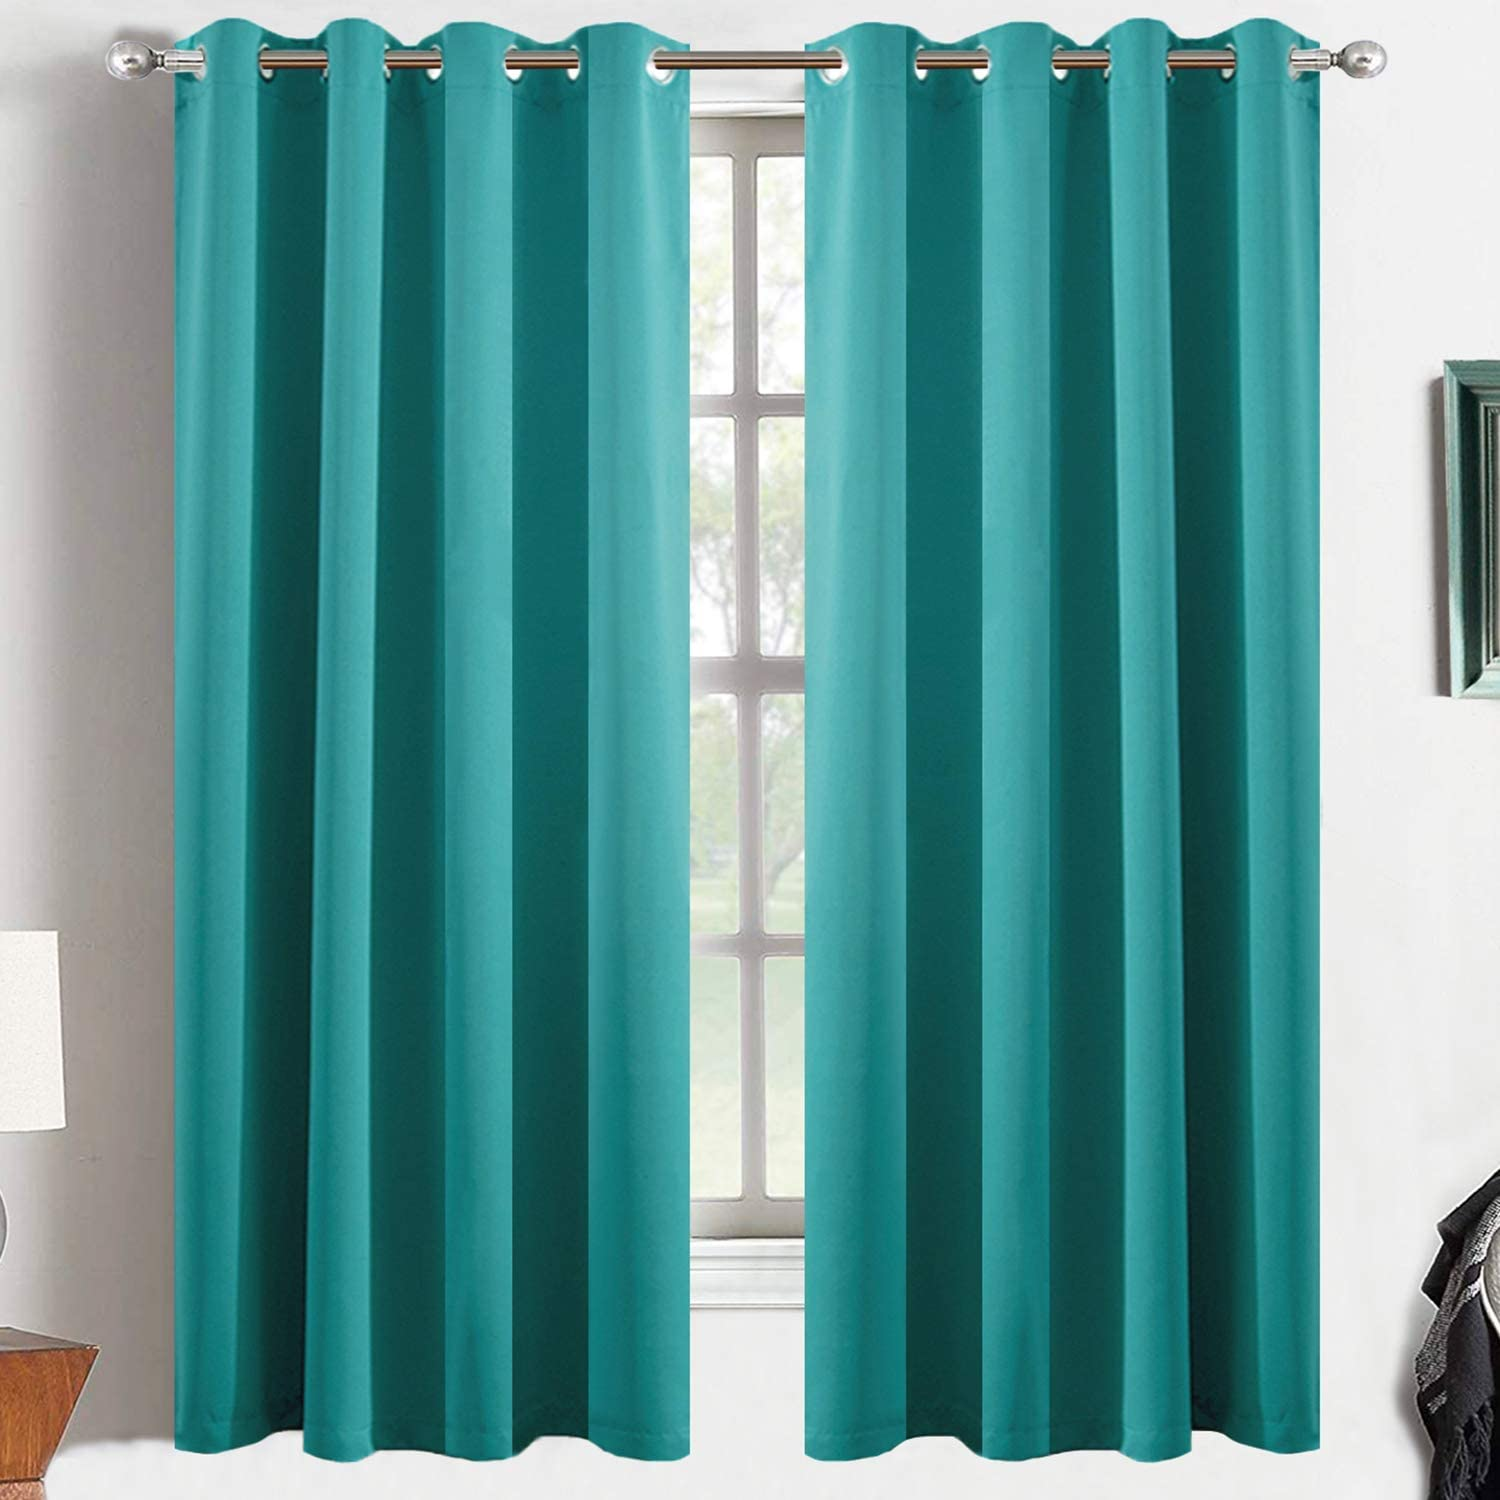 Yakamok Teal Light Blocking Window Curtains Thermal Insulated Room Darkening Draperies for Bedroom/Living Room Solid Grommet Top Window Drapes/Panels 52x63 Inch, 2 Panels